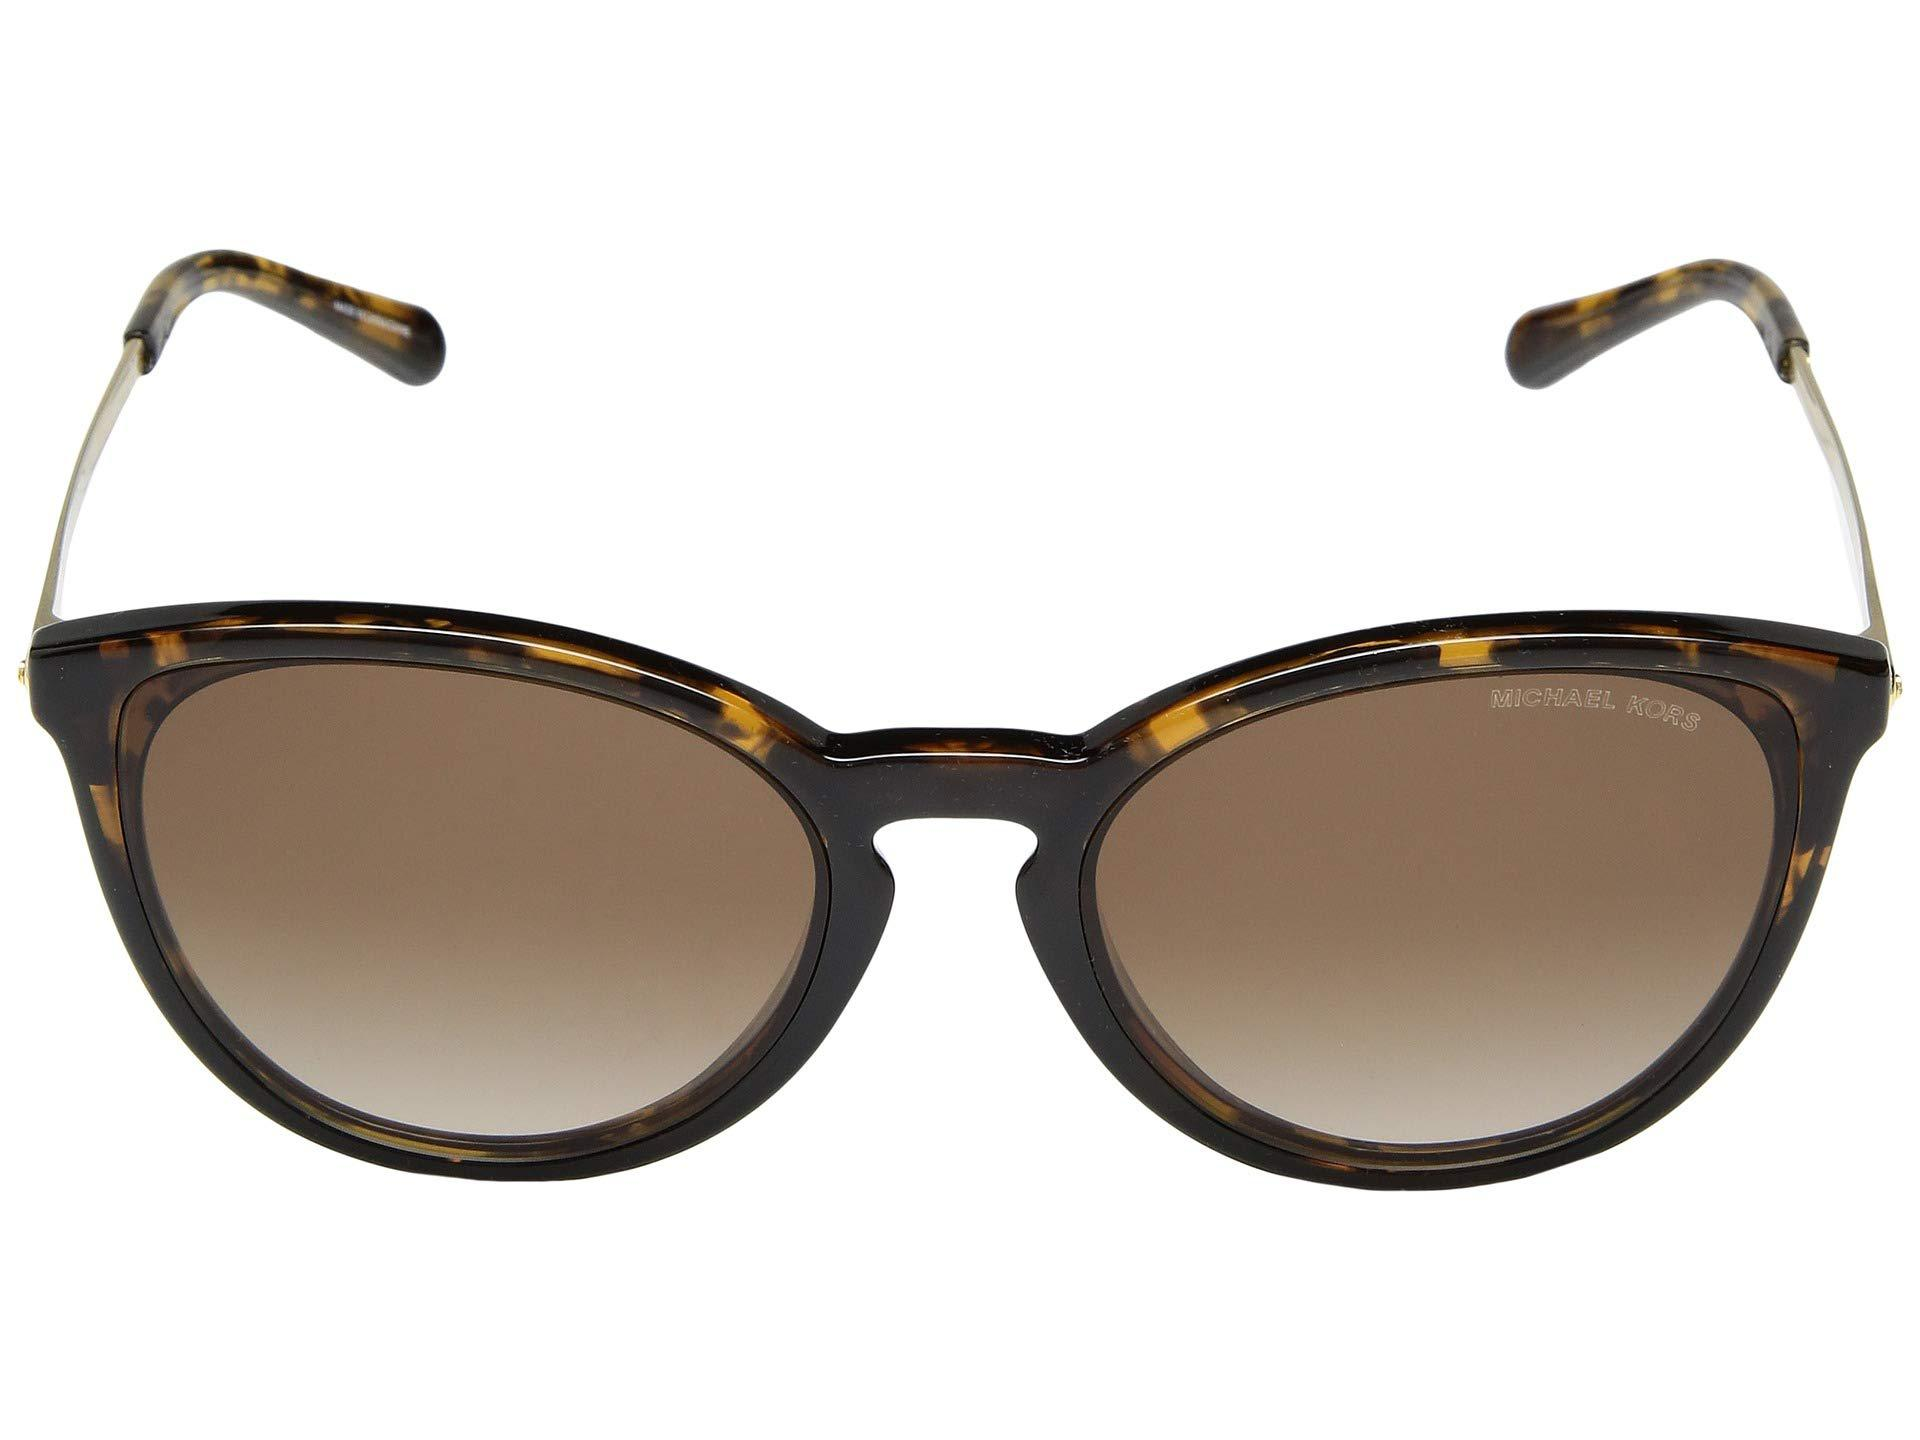 99261c2b0eadd Michael Kors - Multicolor 0mk2080u 56mm (cordovan Solid cordovan Gradient) Fashion  Sunglasses -. View fullscreen